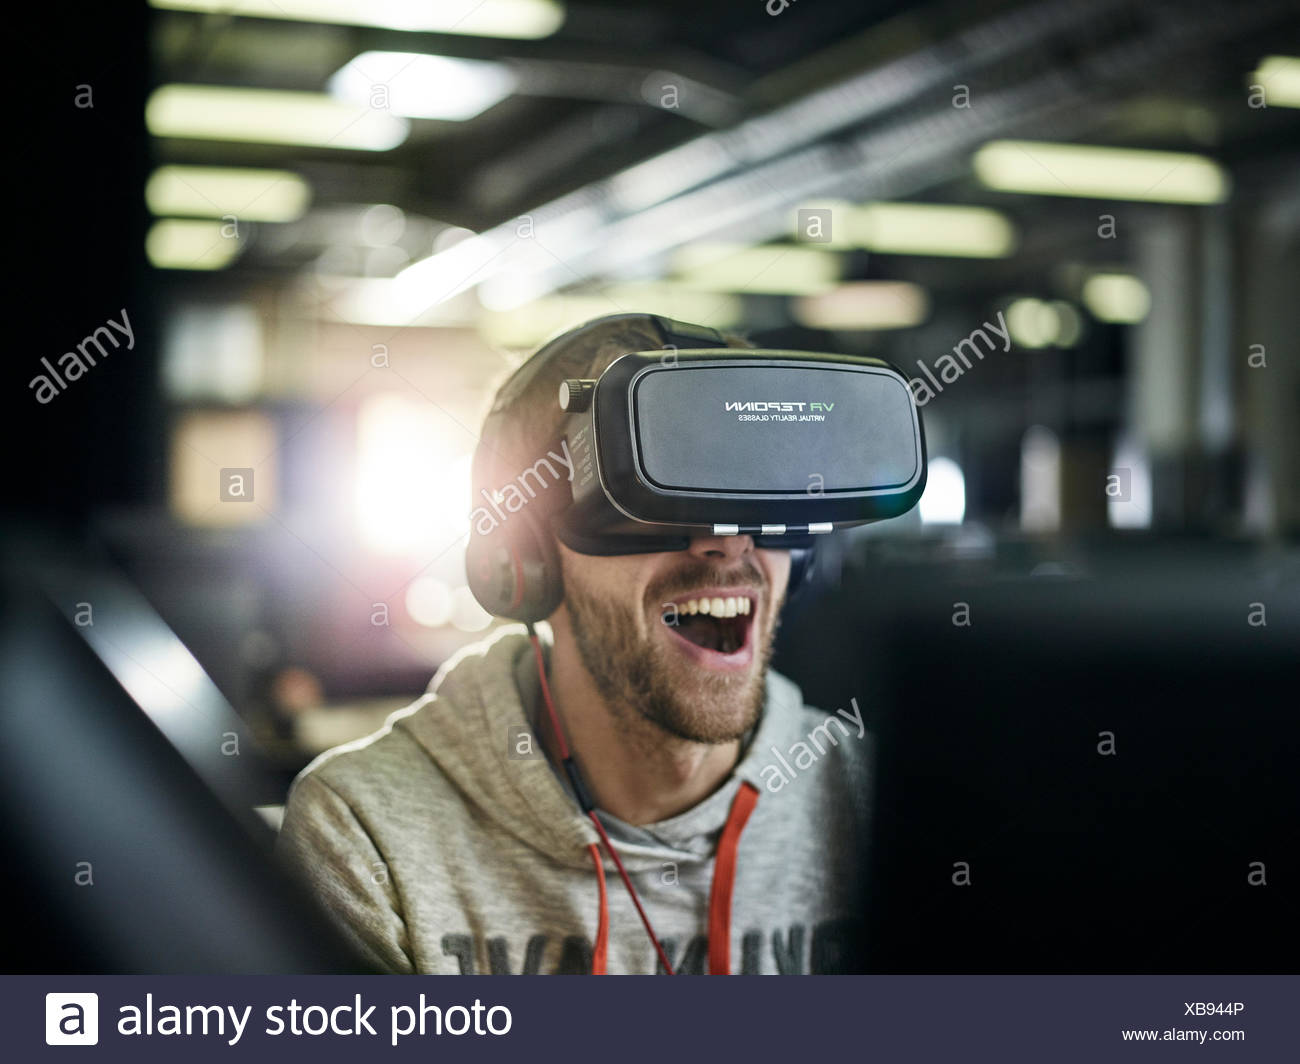 Man with VR goggles, virtual reality glasses and headphones - Stock Image